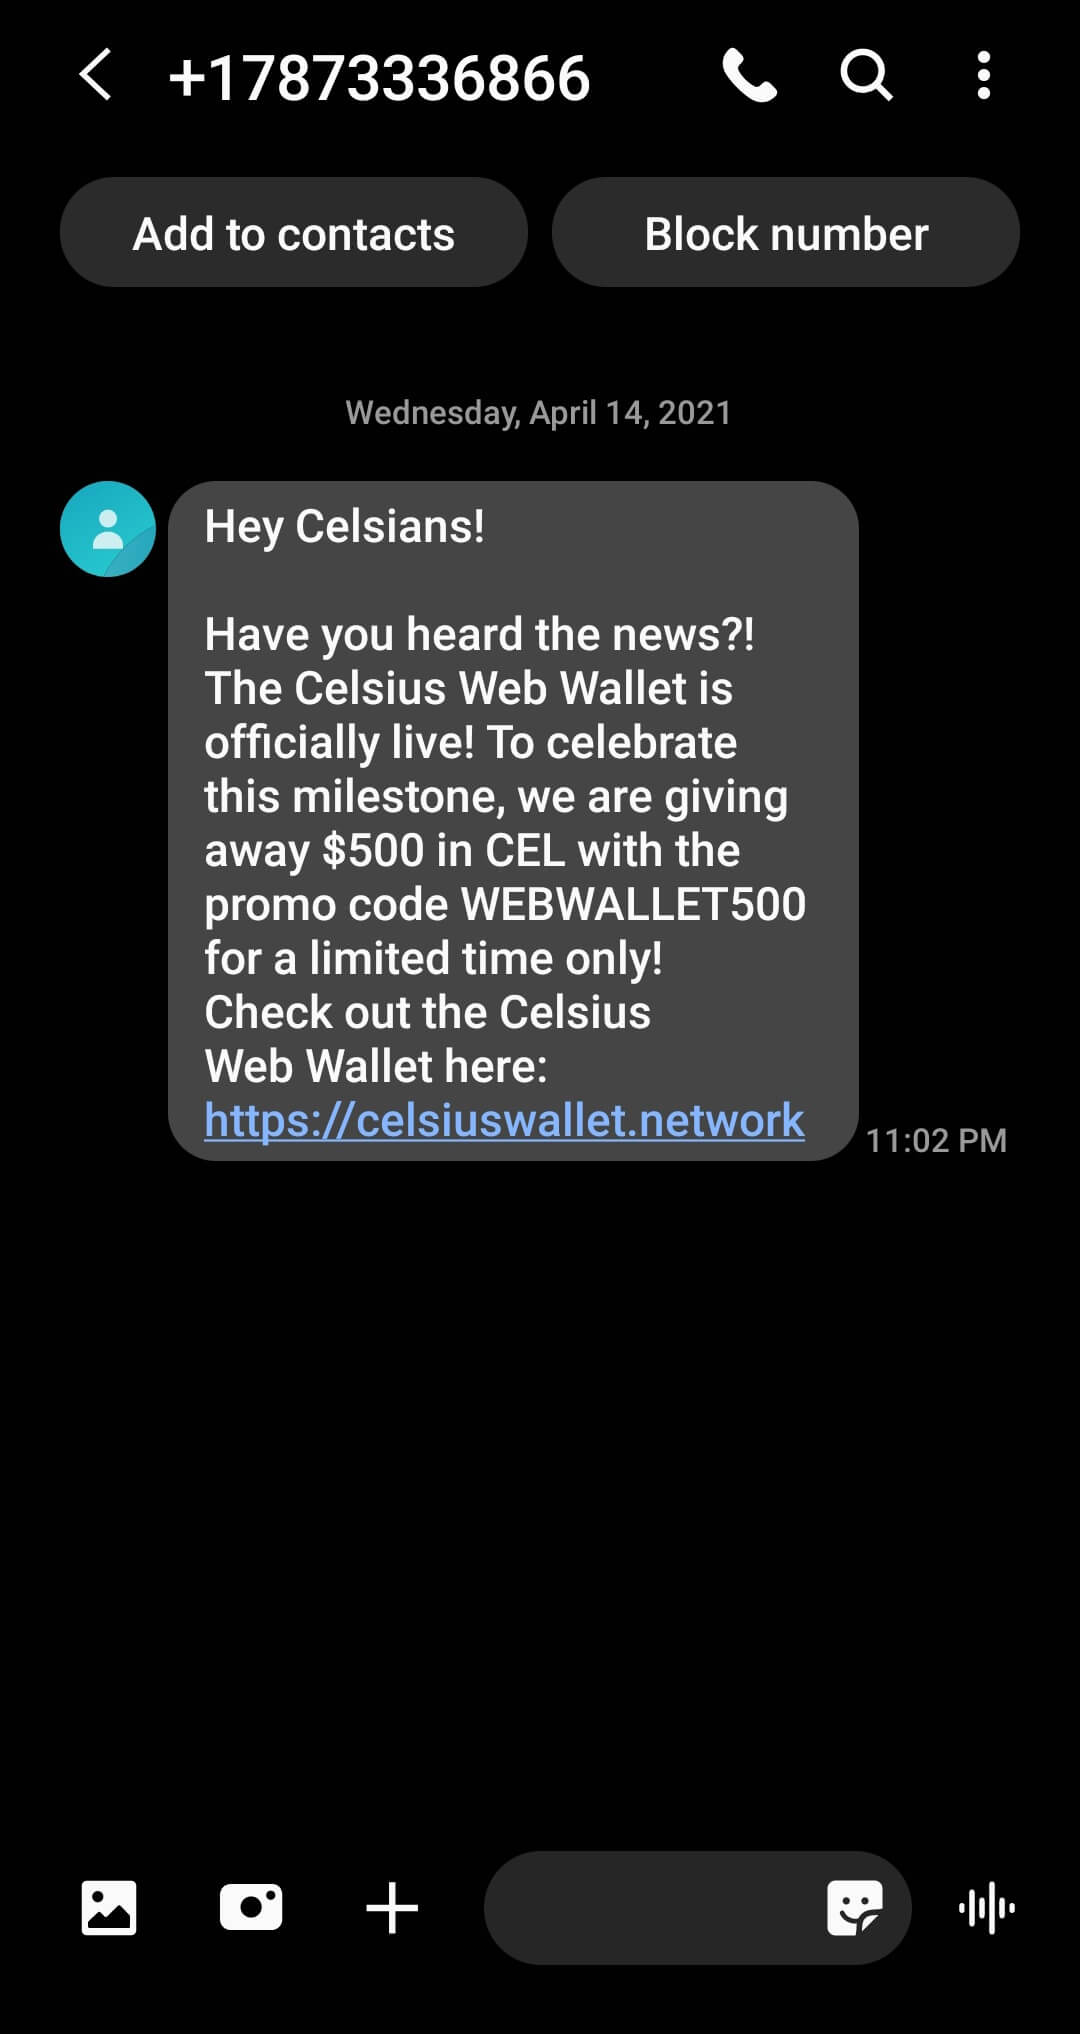 Celsius SMS phishing image heimdal security